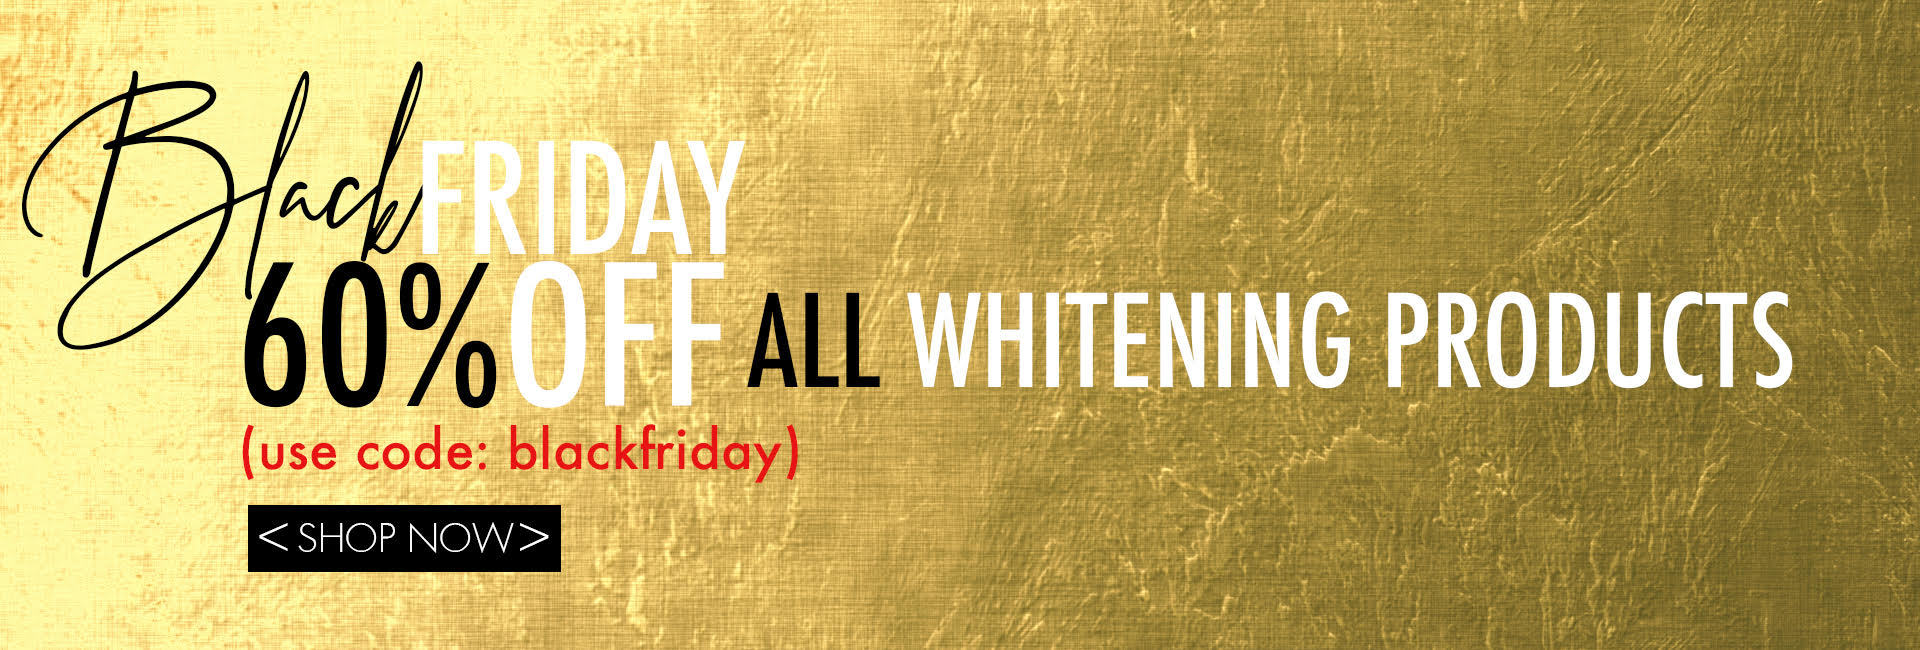 Black Friday - 60% off all whitening products. Use code: blackfriday.